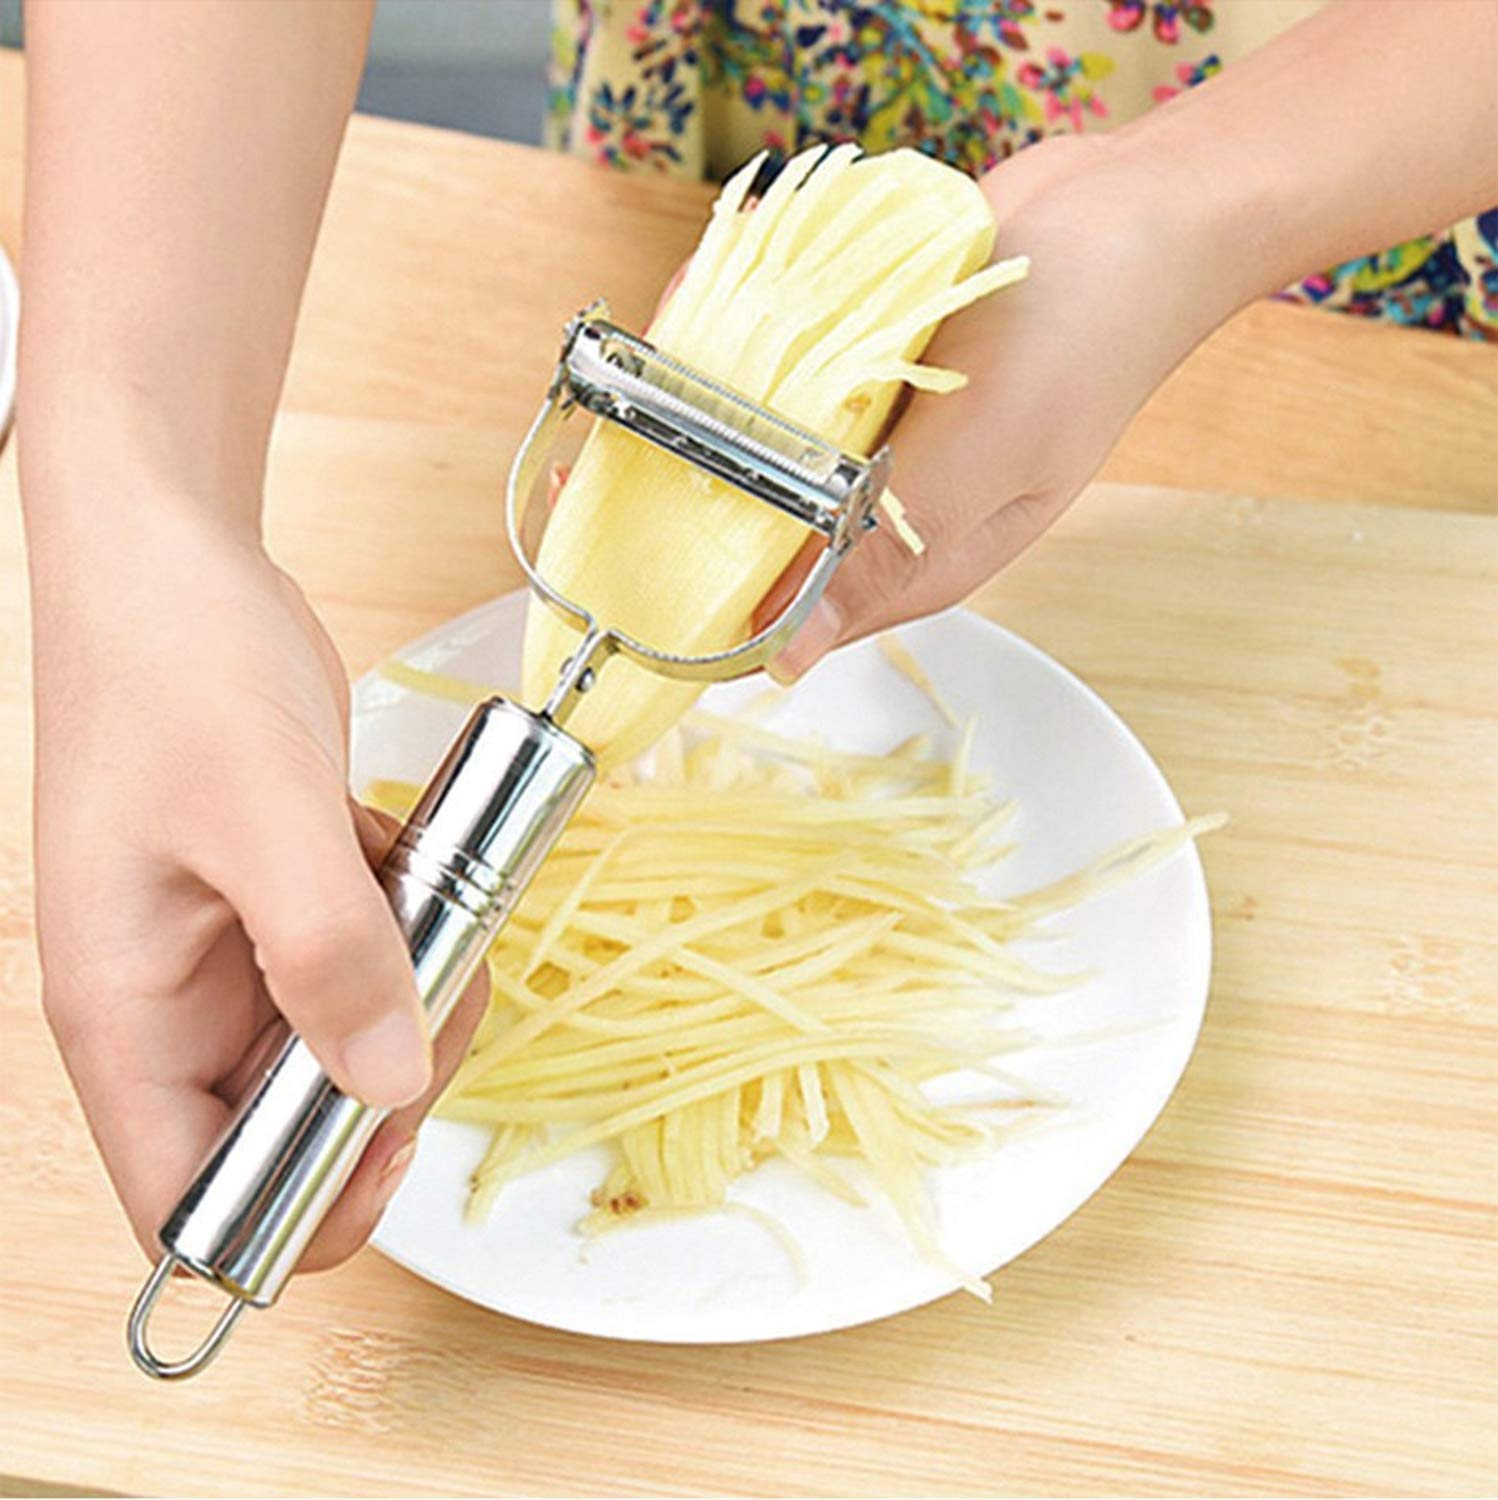 A double panning grater is used to slice potato in the image.